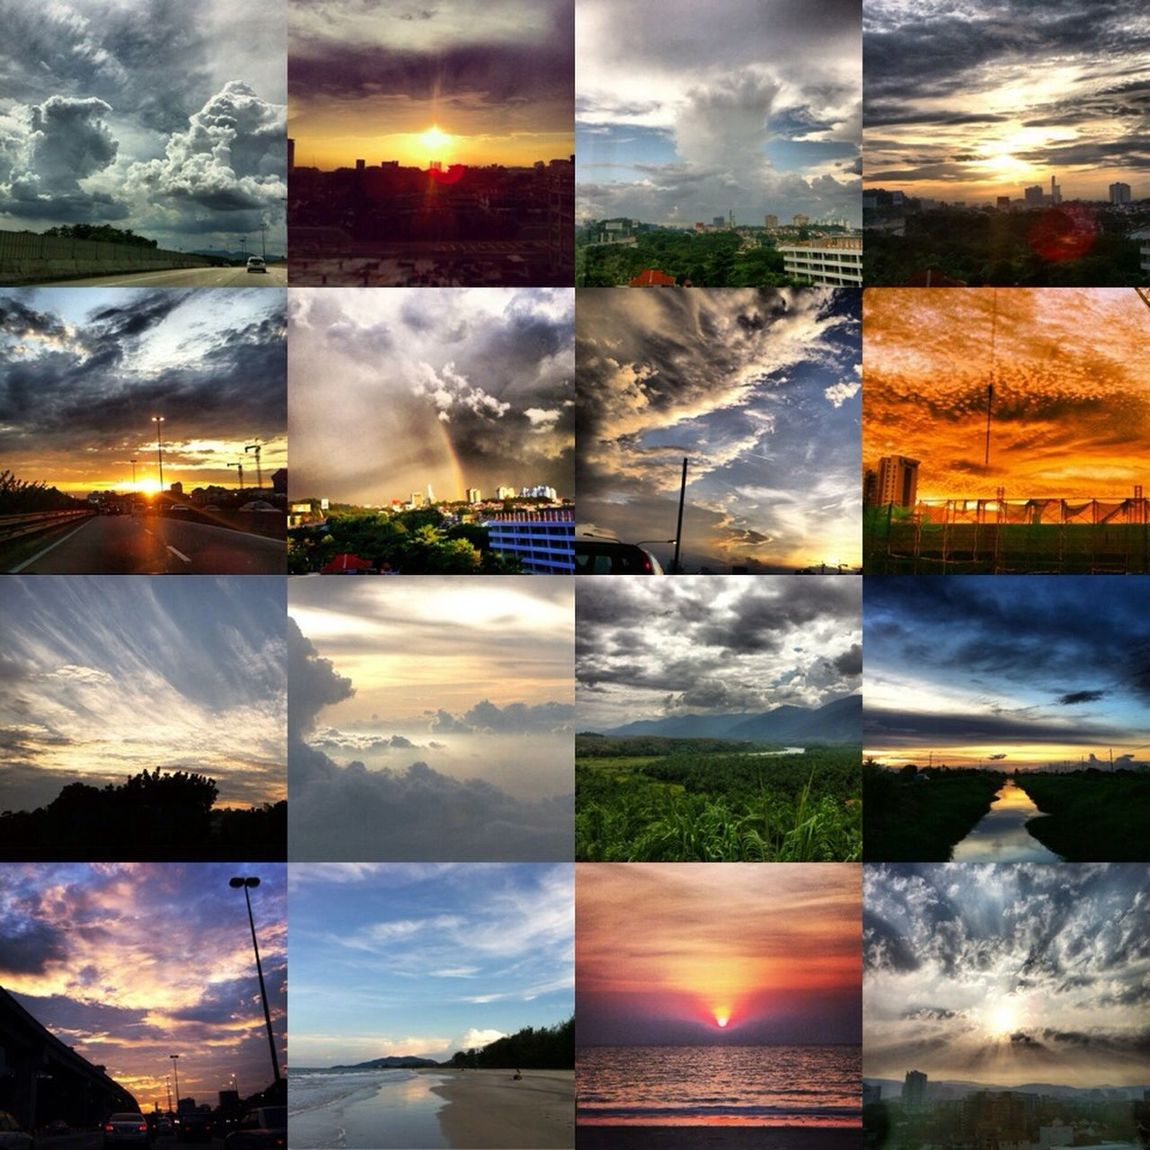 09-Jan-2015 Repost from my Instagram acct ofMy Collectionn of theBeautifullClouds FormationnSunrisee &Sunsetss inMalaysiaa from 2010 till today, taken with my Iphone4 IPhoneography